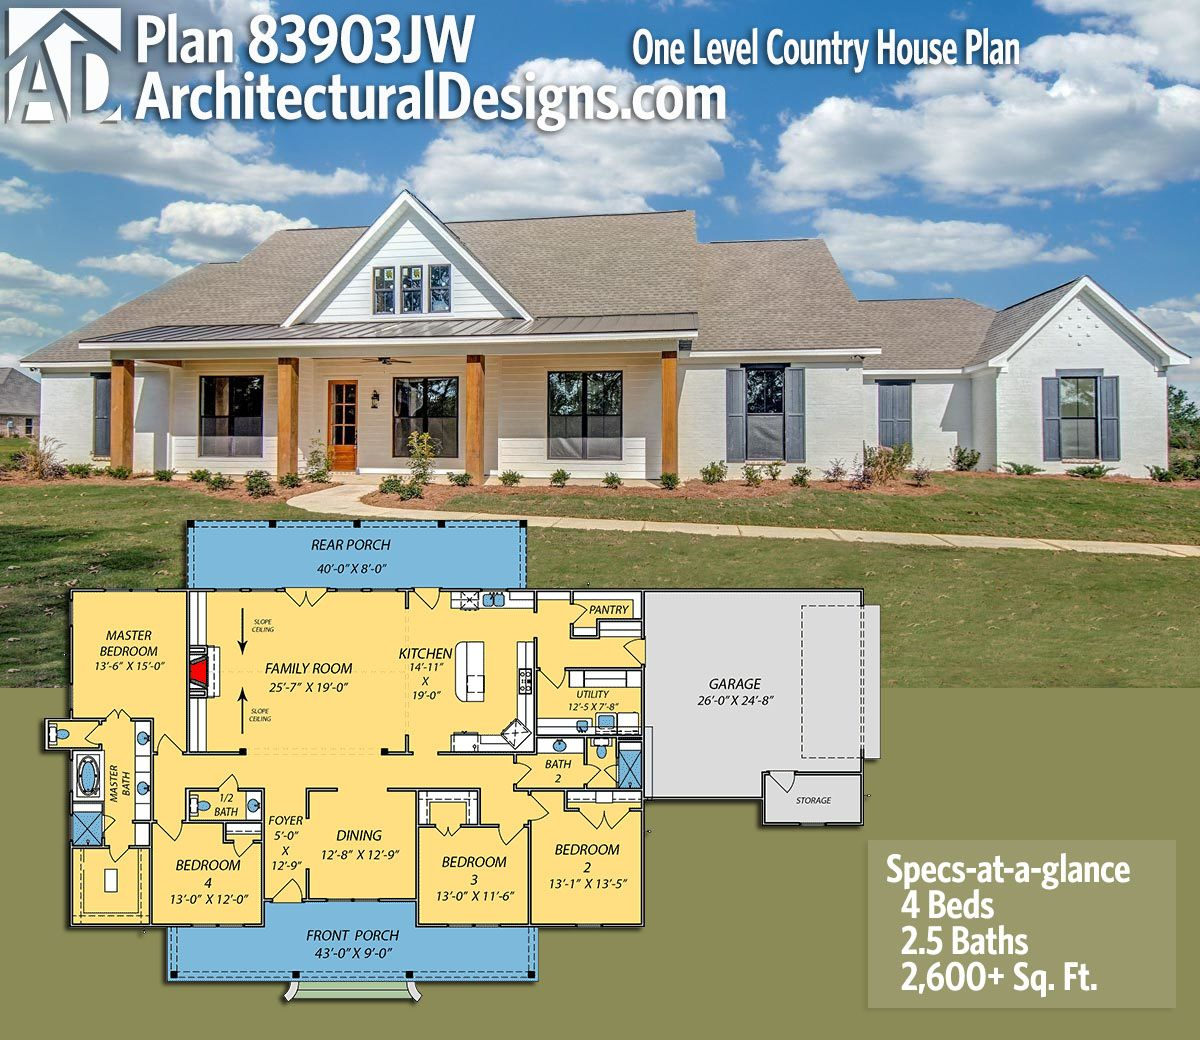 Plan 83903jw one level country house plan architectural for 1 level farmhouse plans